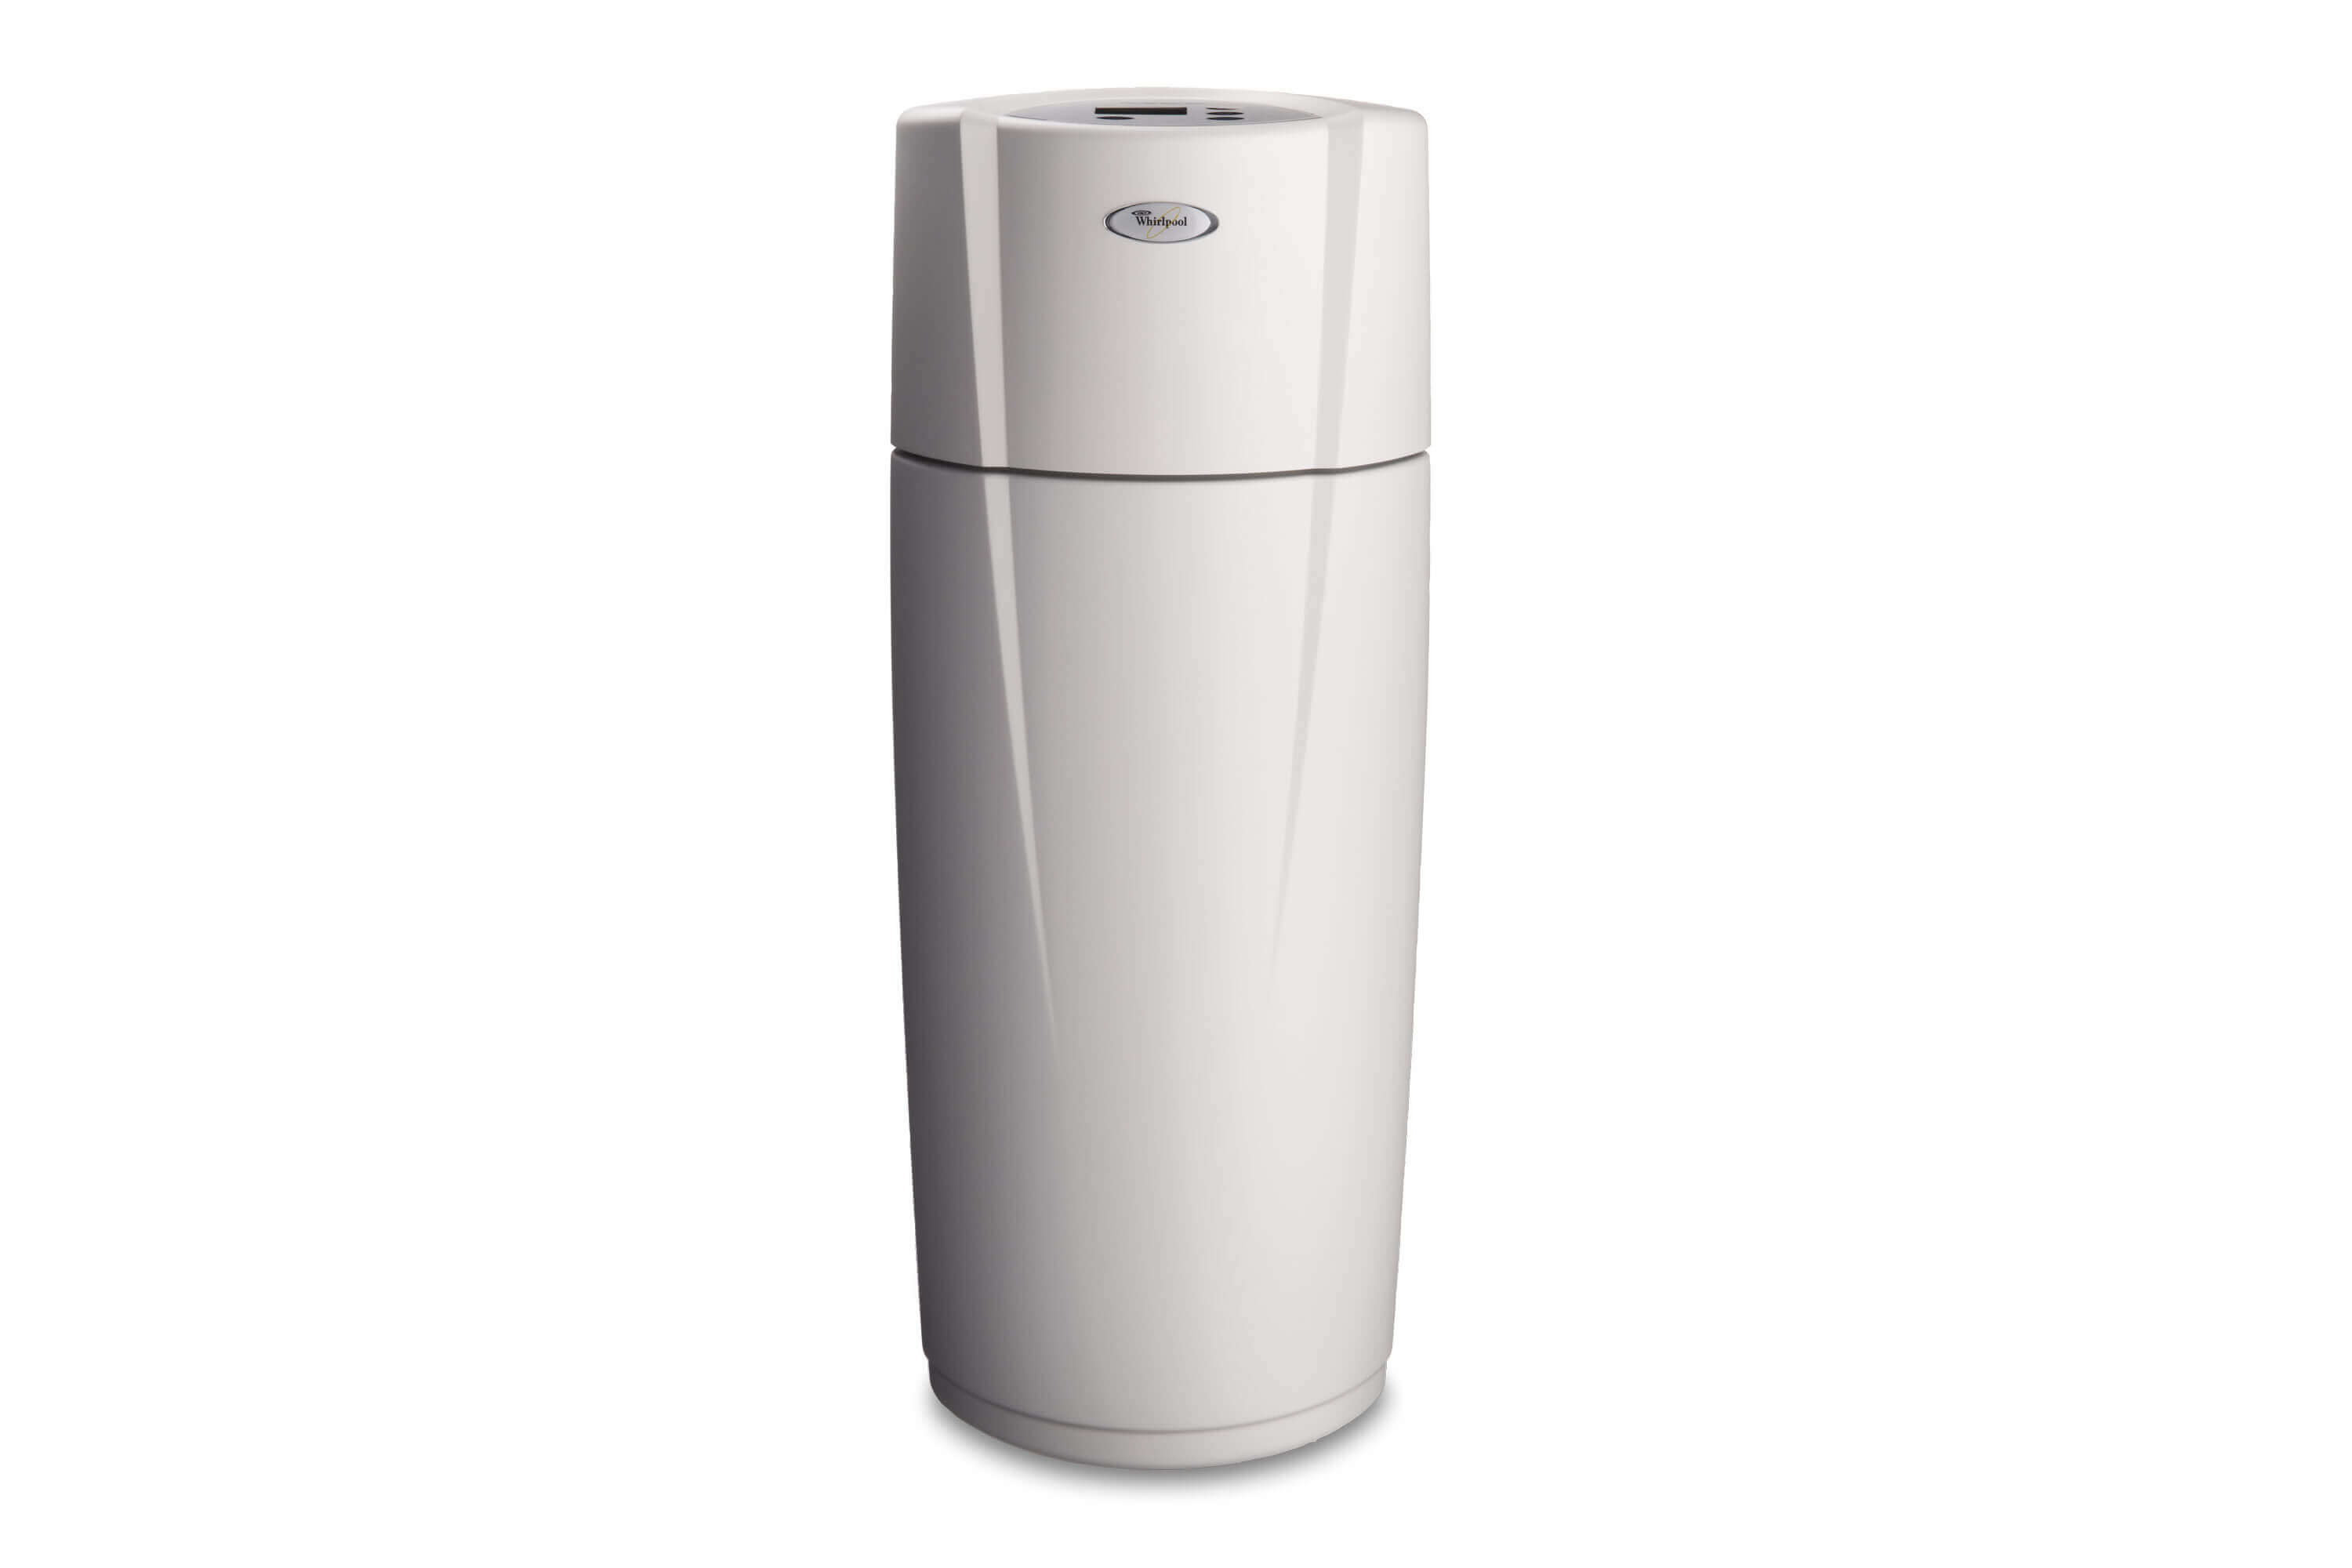 Central Home Water Filtration System Whelj1 Whirlpool